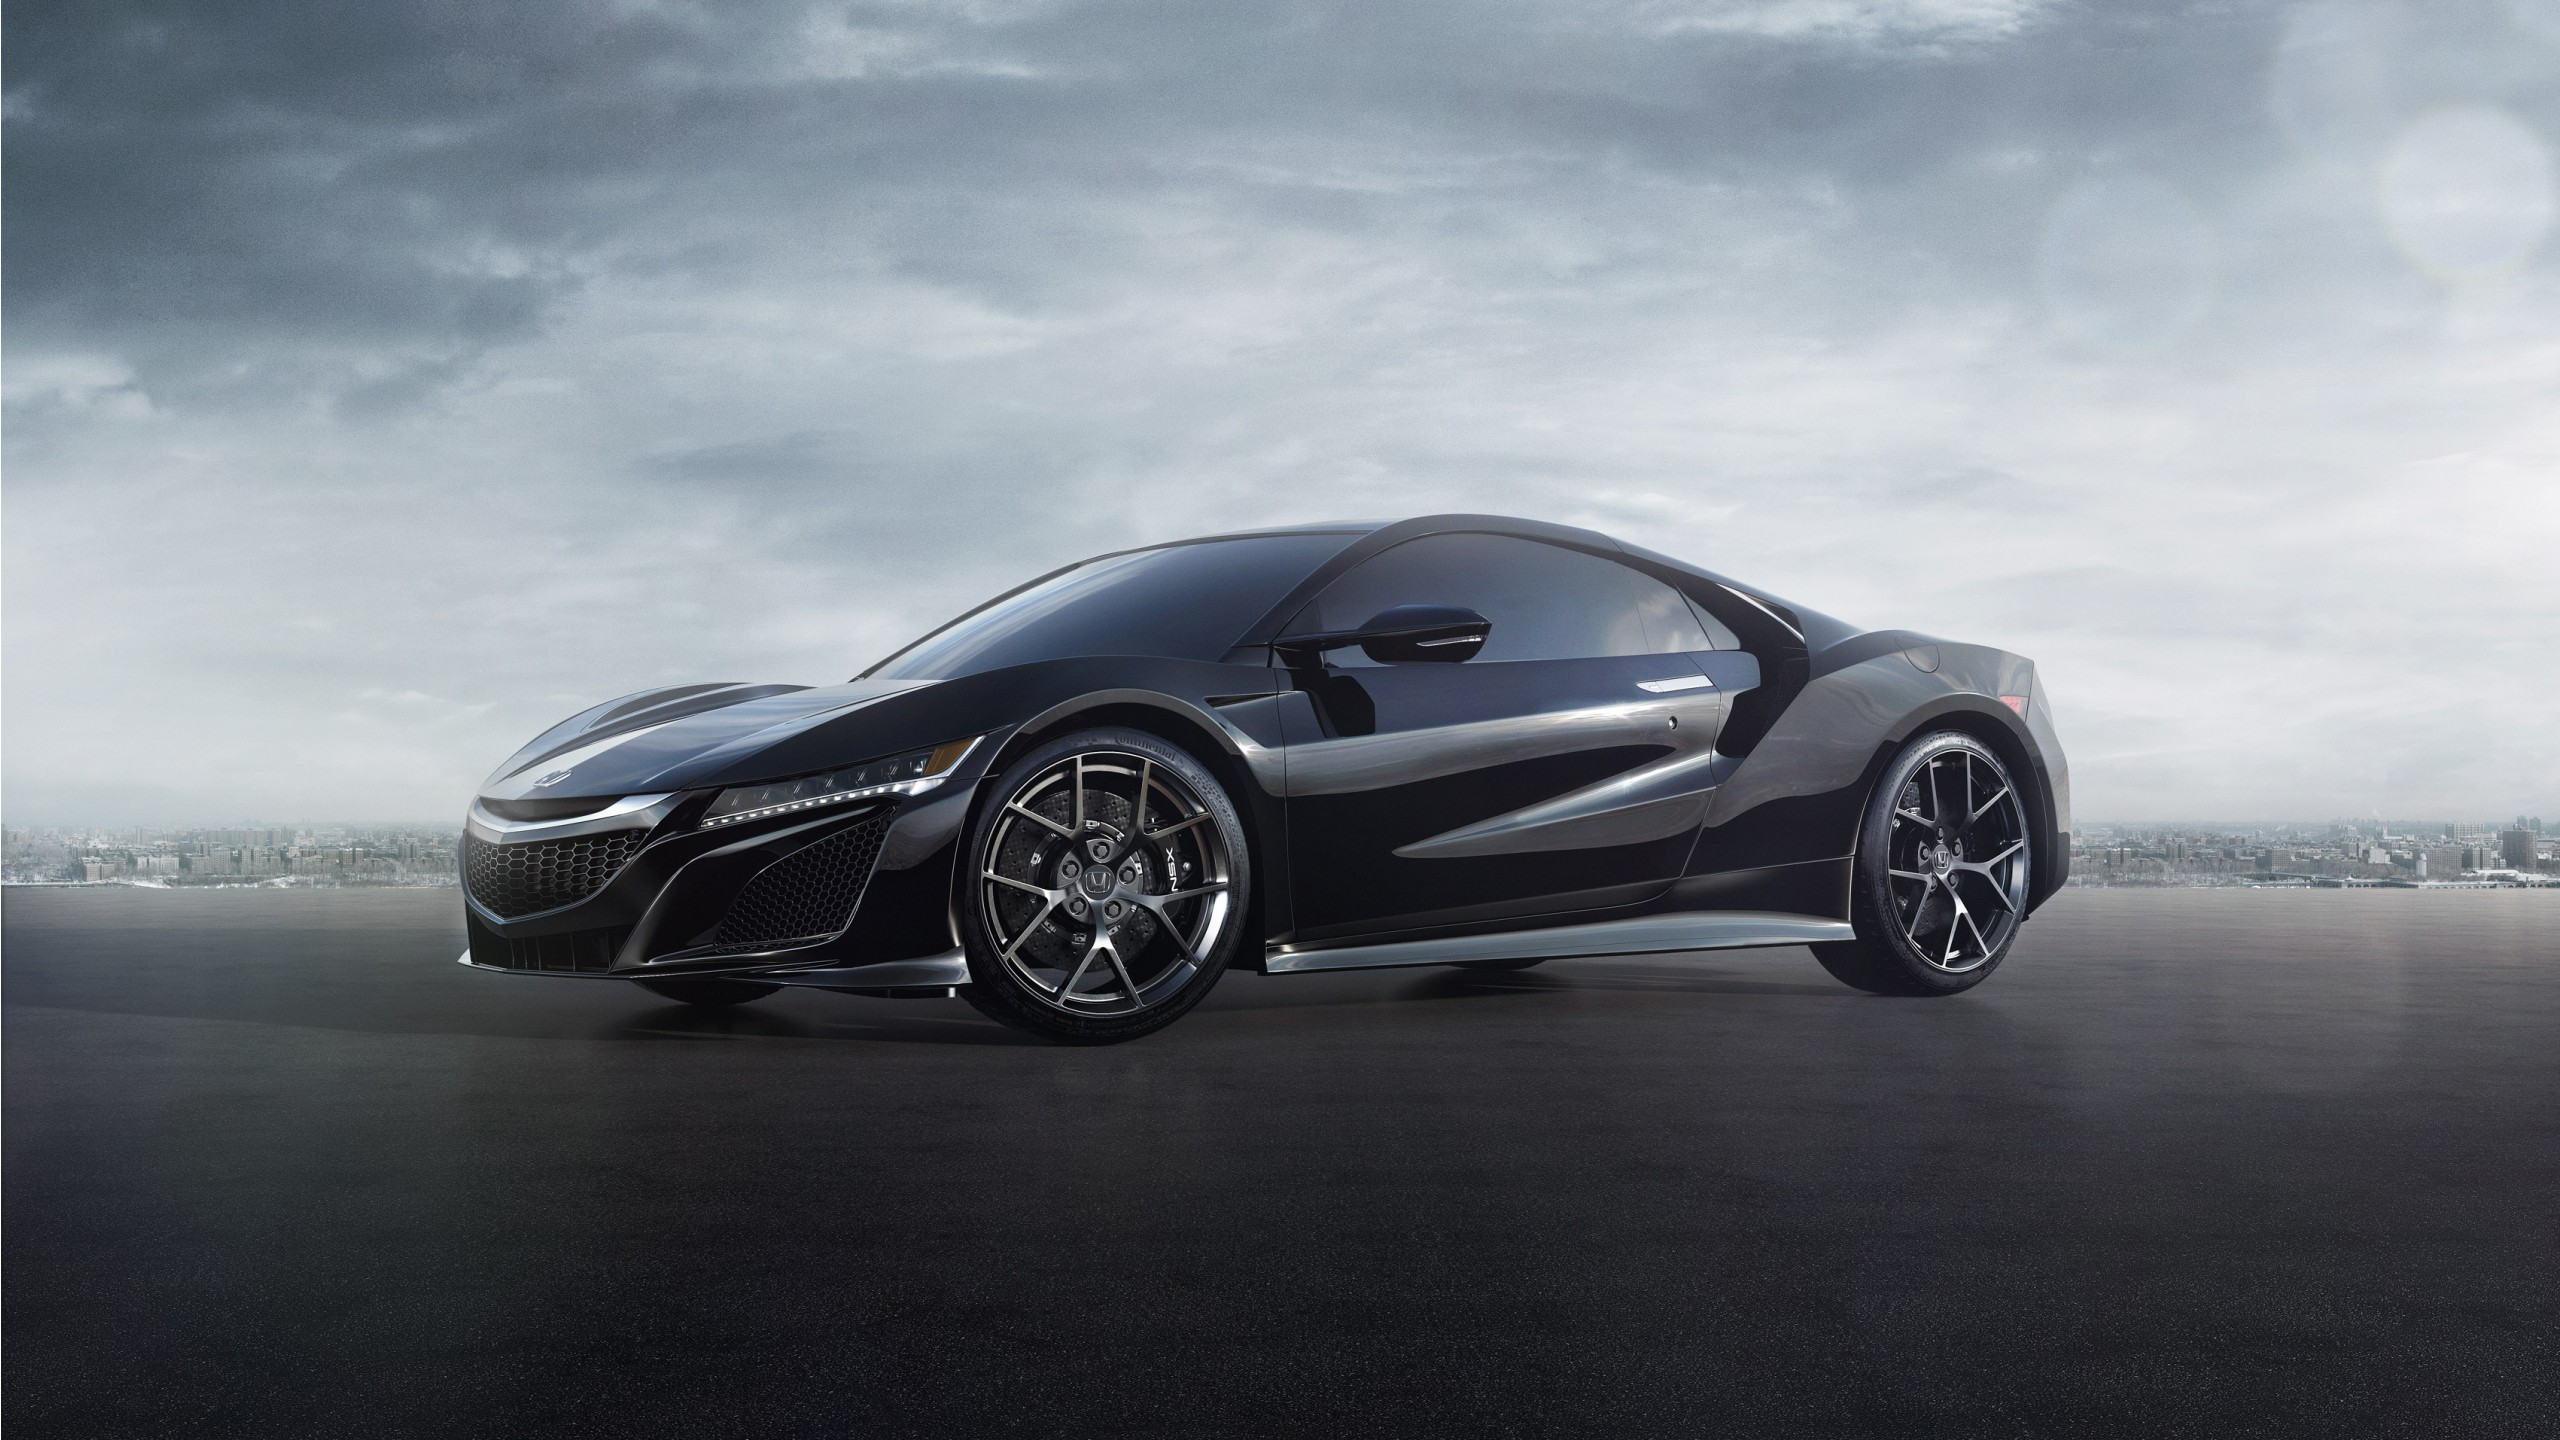 Hd Car Wallpapers For Android Tablets Honda Nsx 2018 Wallpaper Hd Car Wallpapers Id 9123